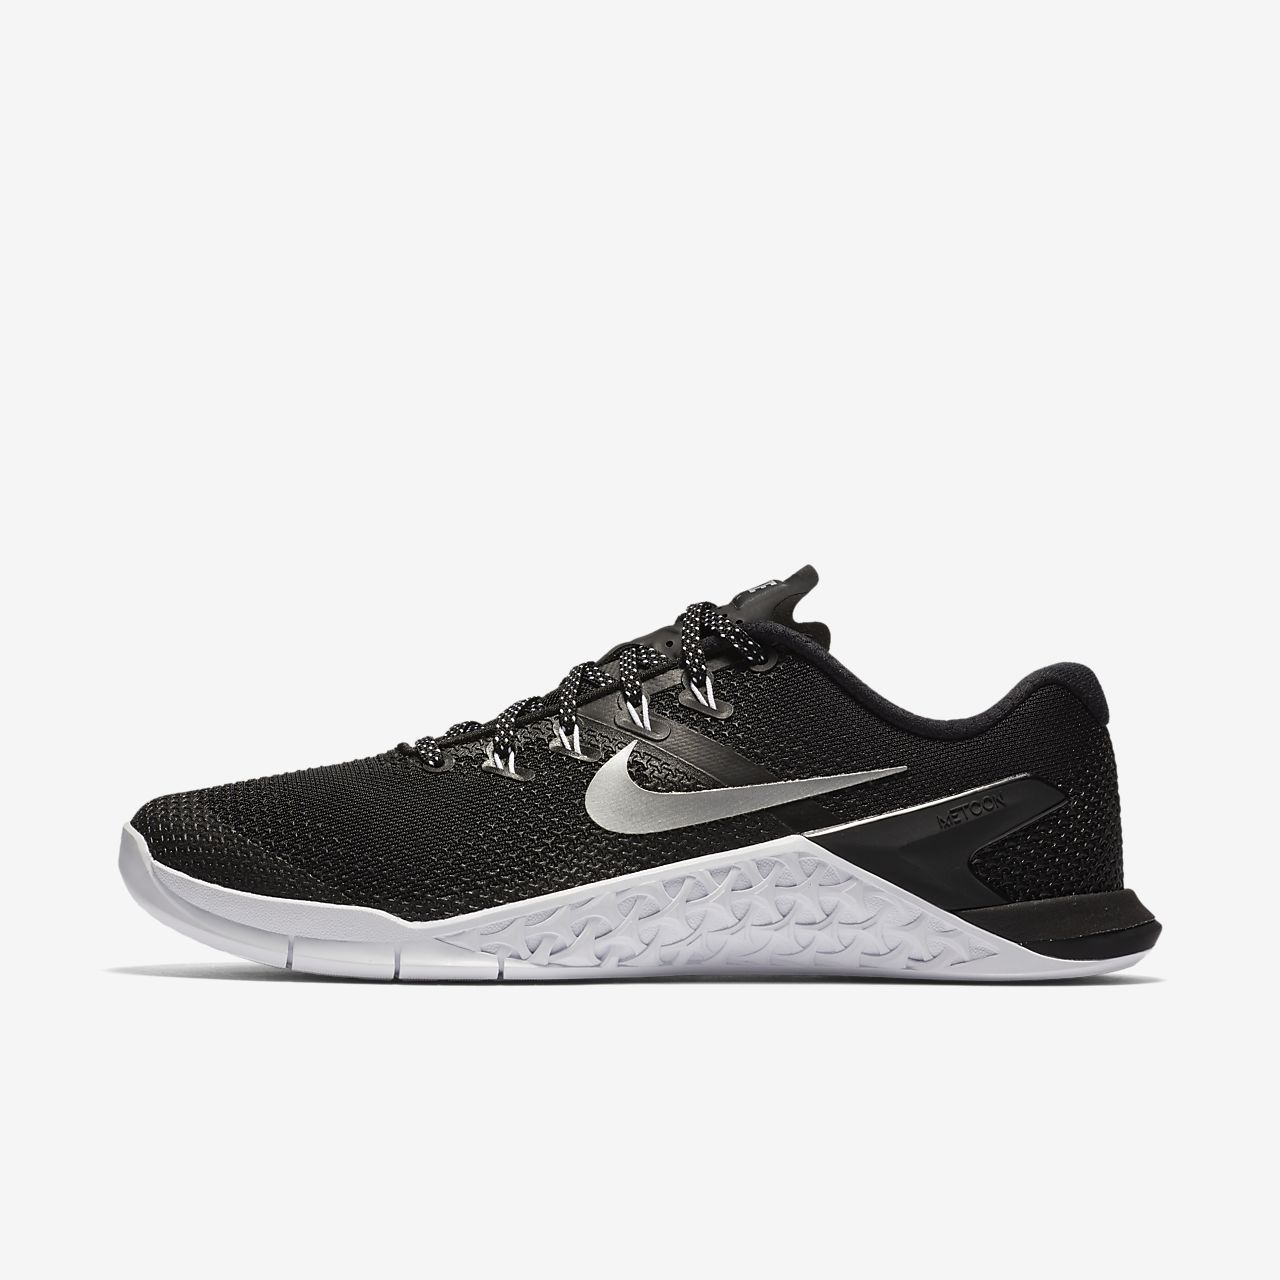 5583adcae06a Women s Cross Training Weightlifting Shoe. Nike Metcon 4